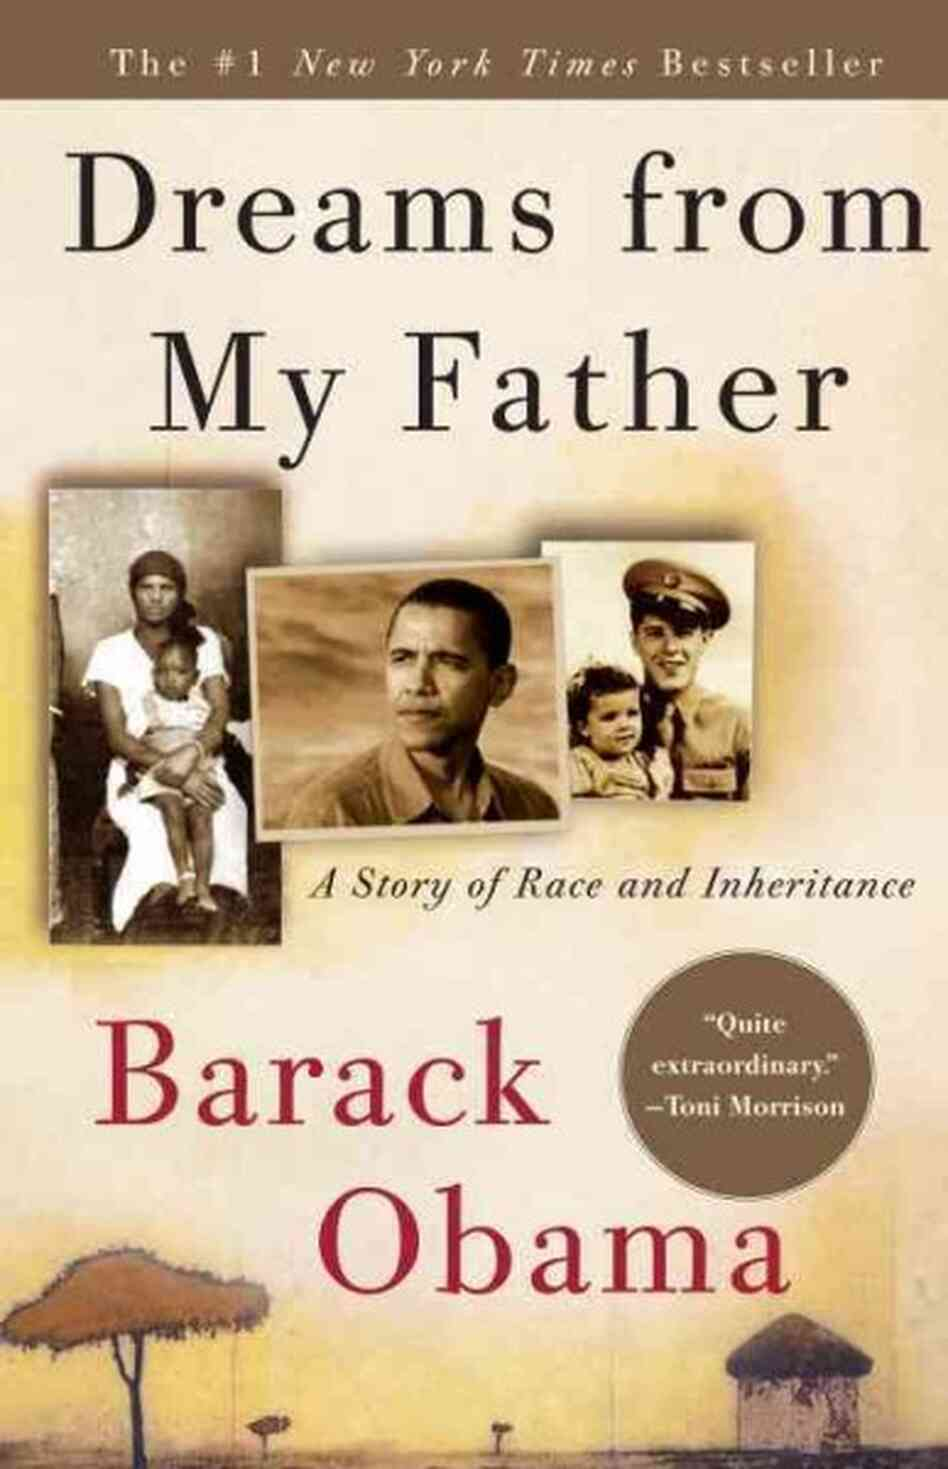 barack obama dreams from my father essay Free essay: essay: dreams from my father barack obama's dreams from my  father is exactly what it claims to be by title, a story of race and.